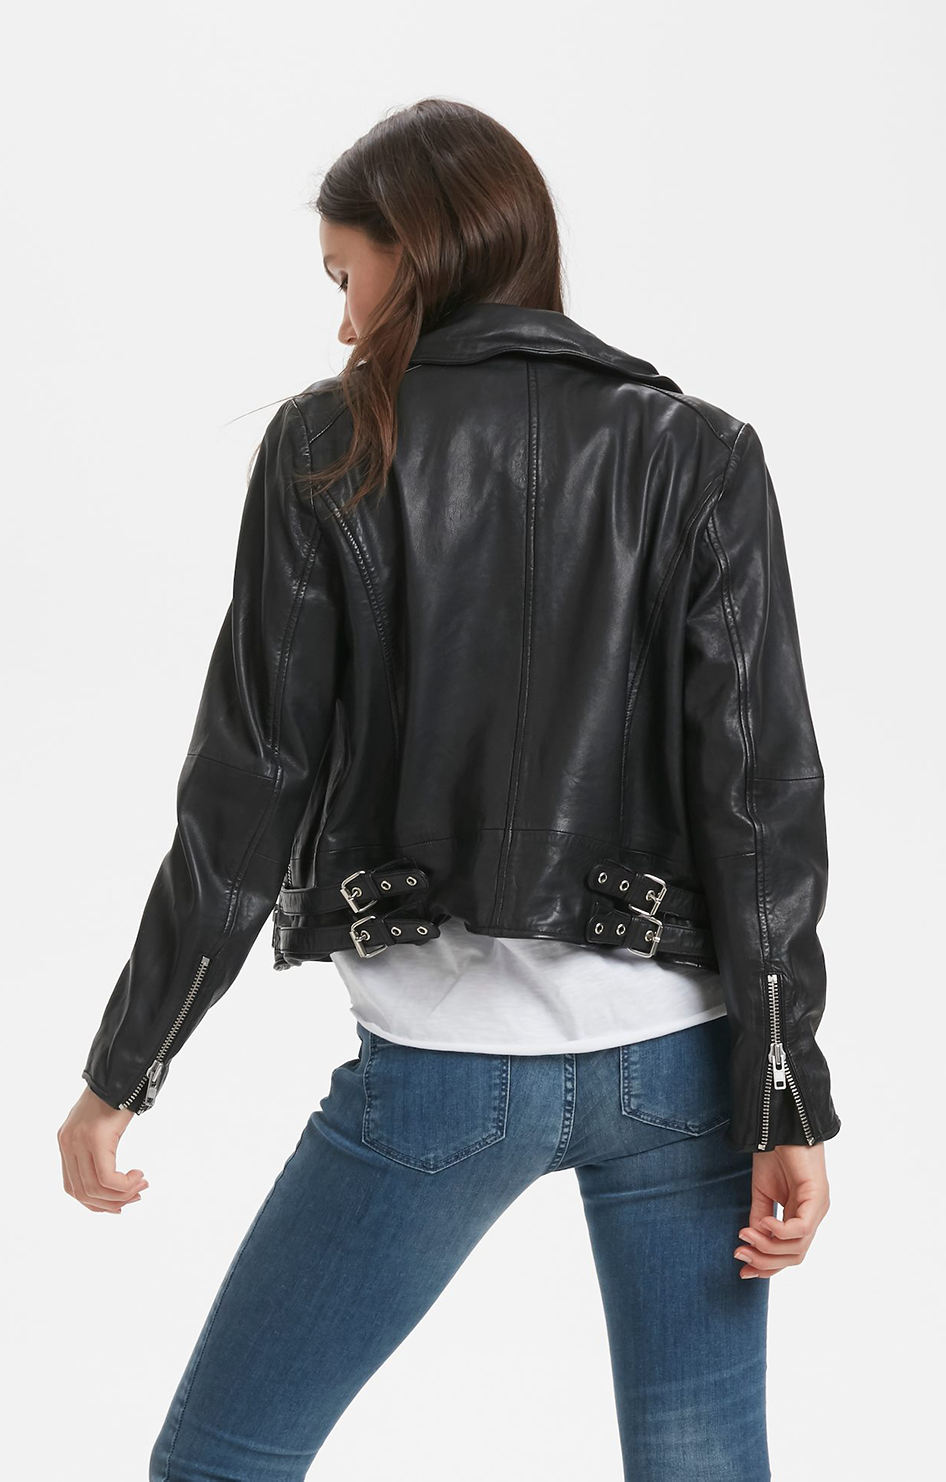 02 Leather Jacket - Denim Hunter